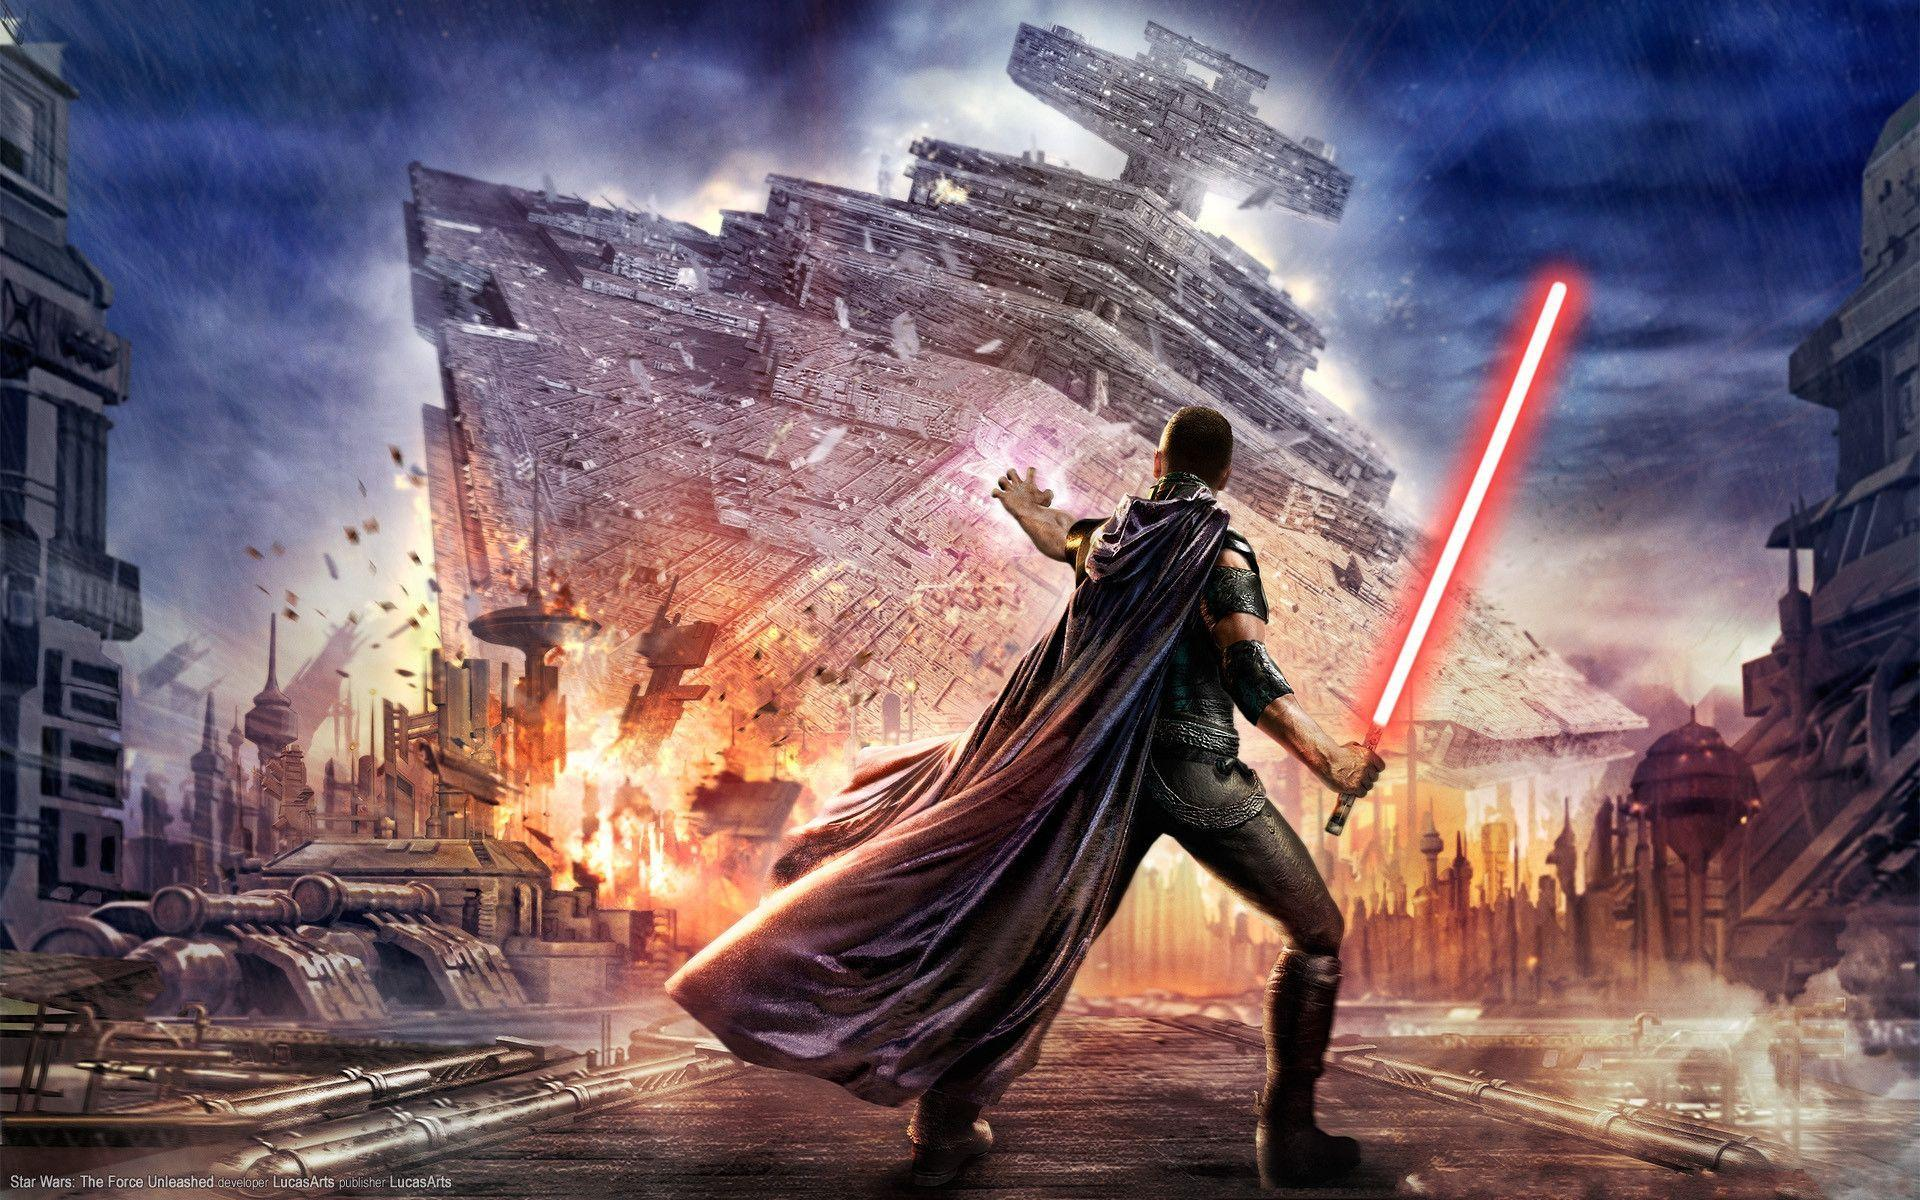 Star Wars The Force Unleashed wallpaper - 601732